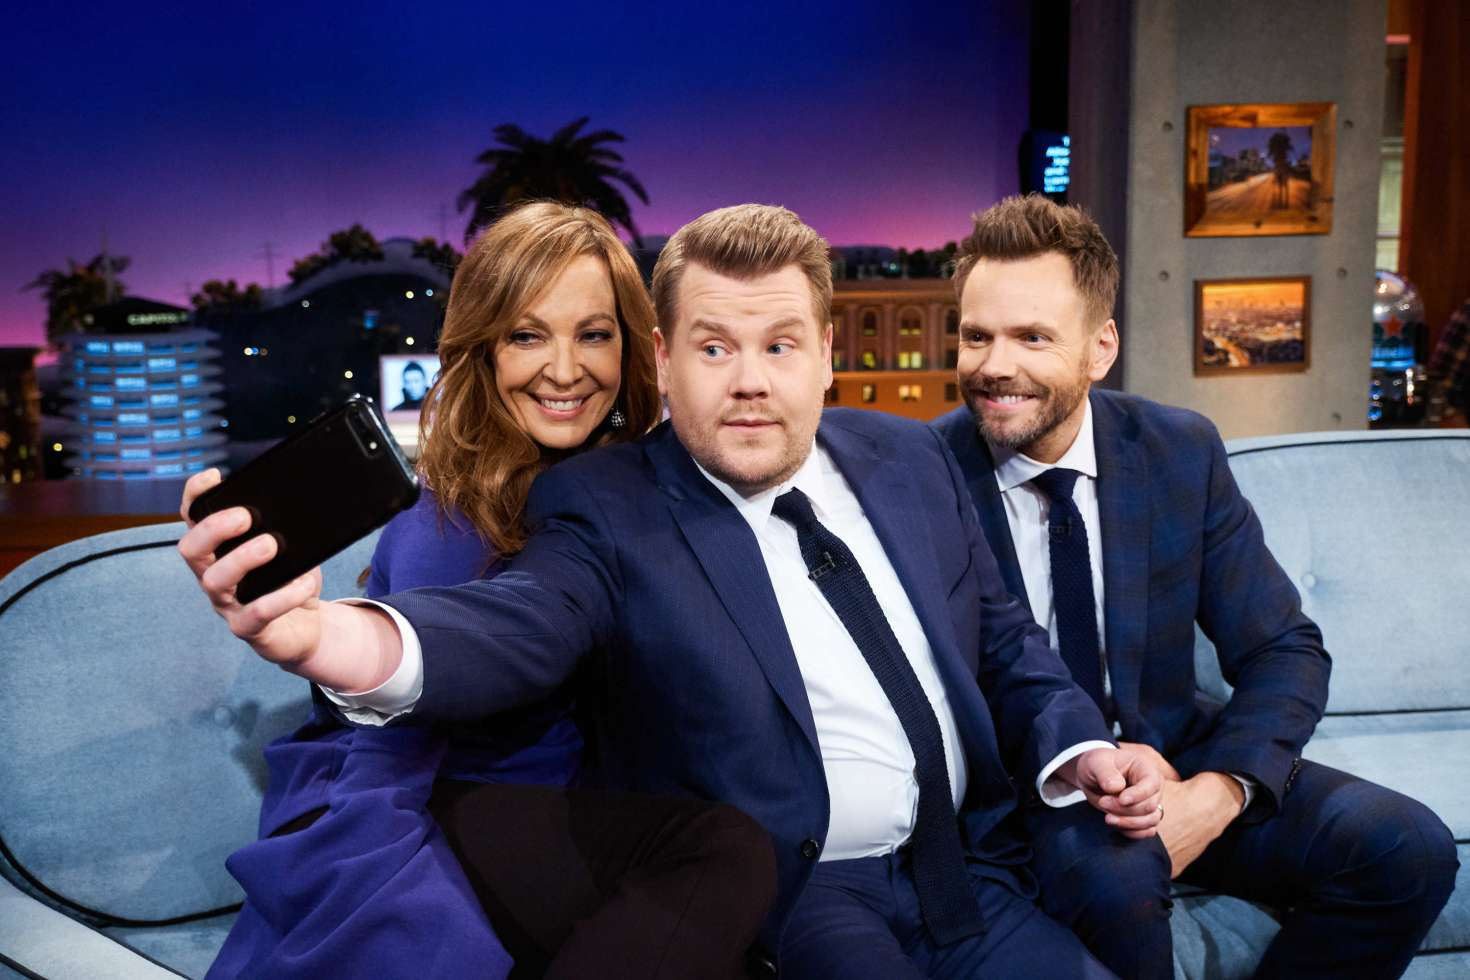 Allison Janney 2018 : Allison Janney: The Late Late Show with James Corden -03